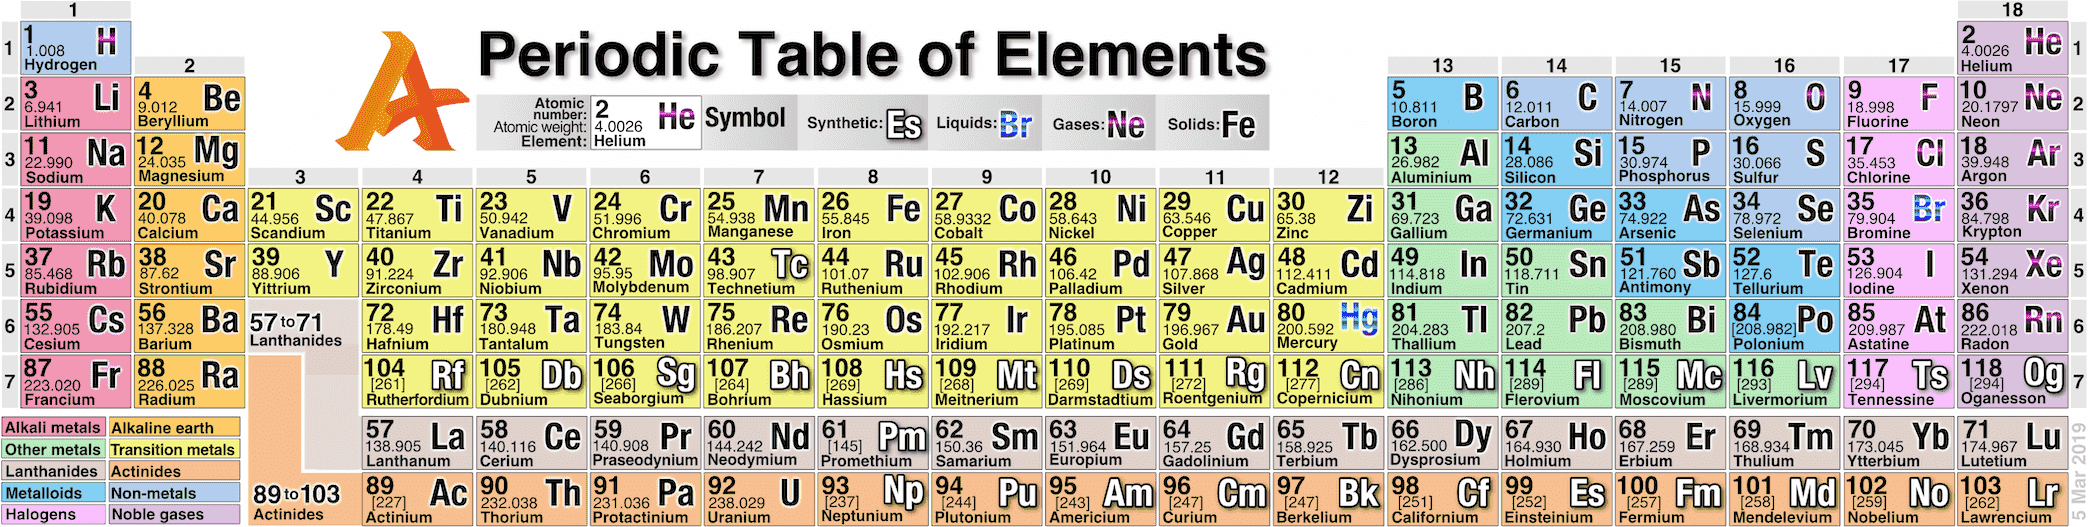 chemical elements periodic table